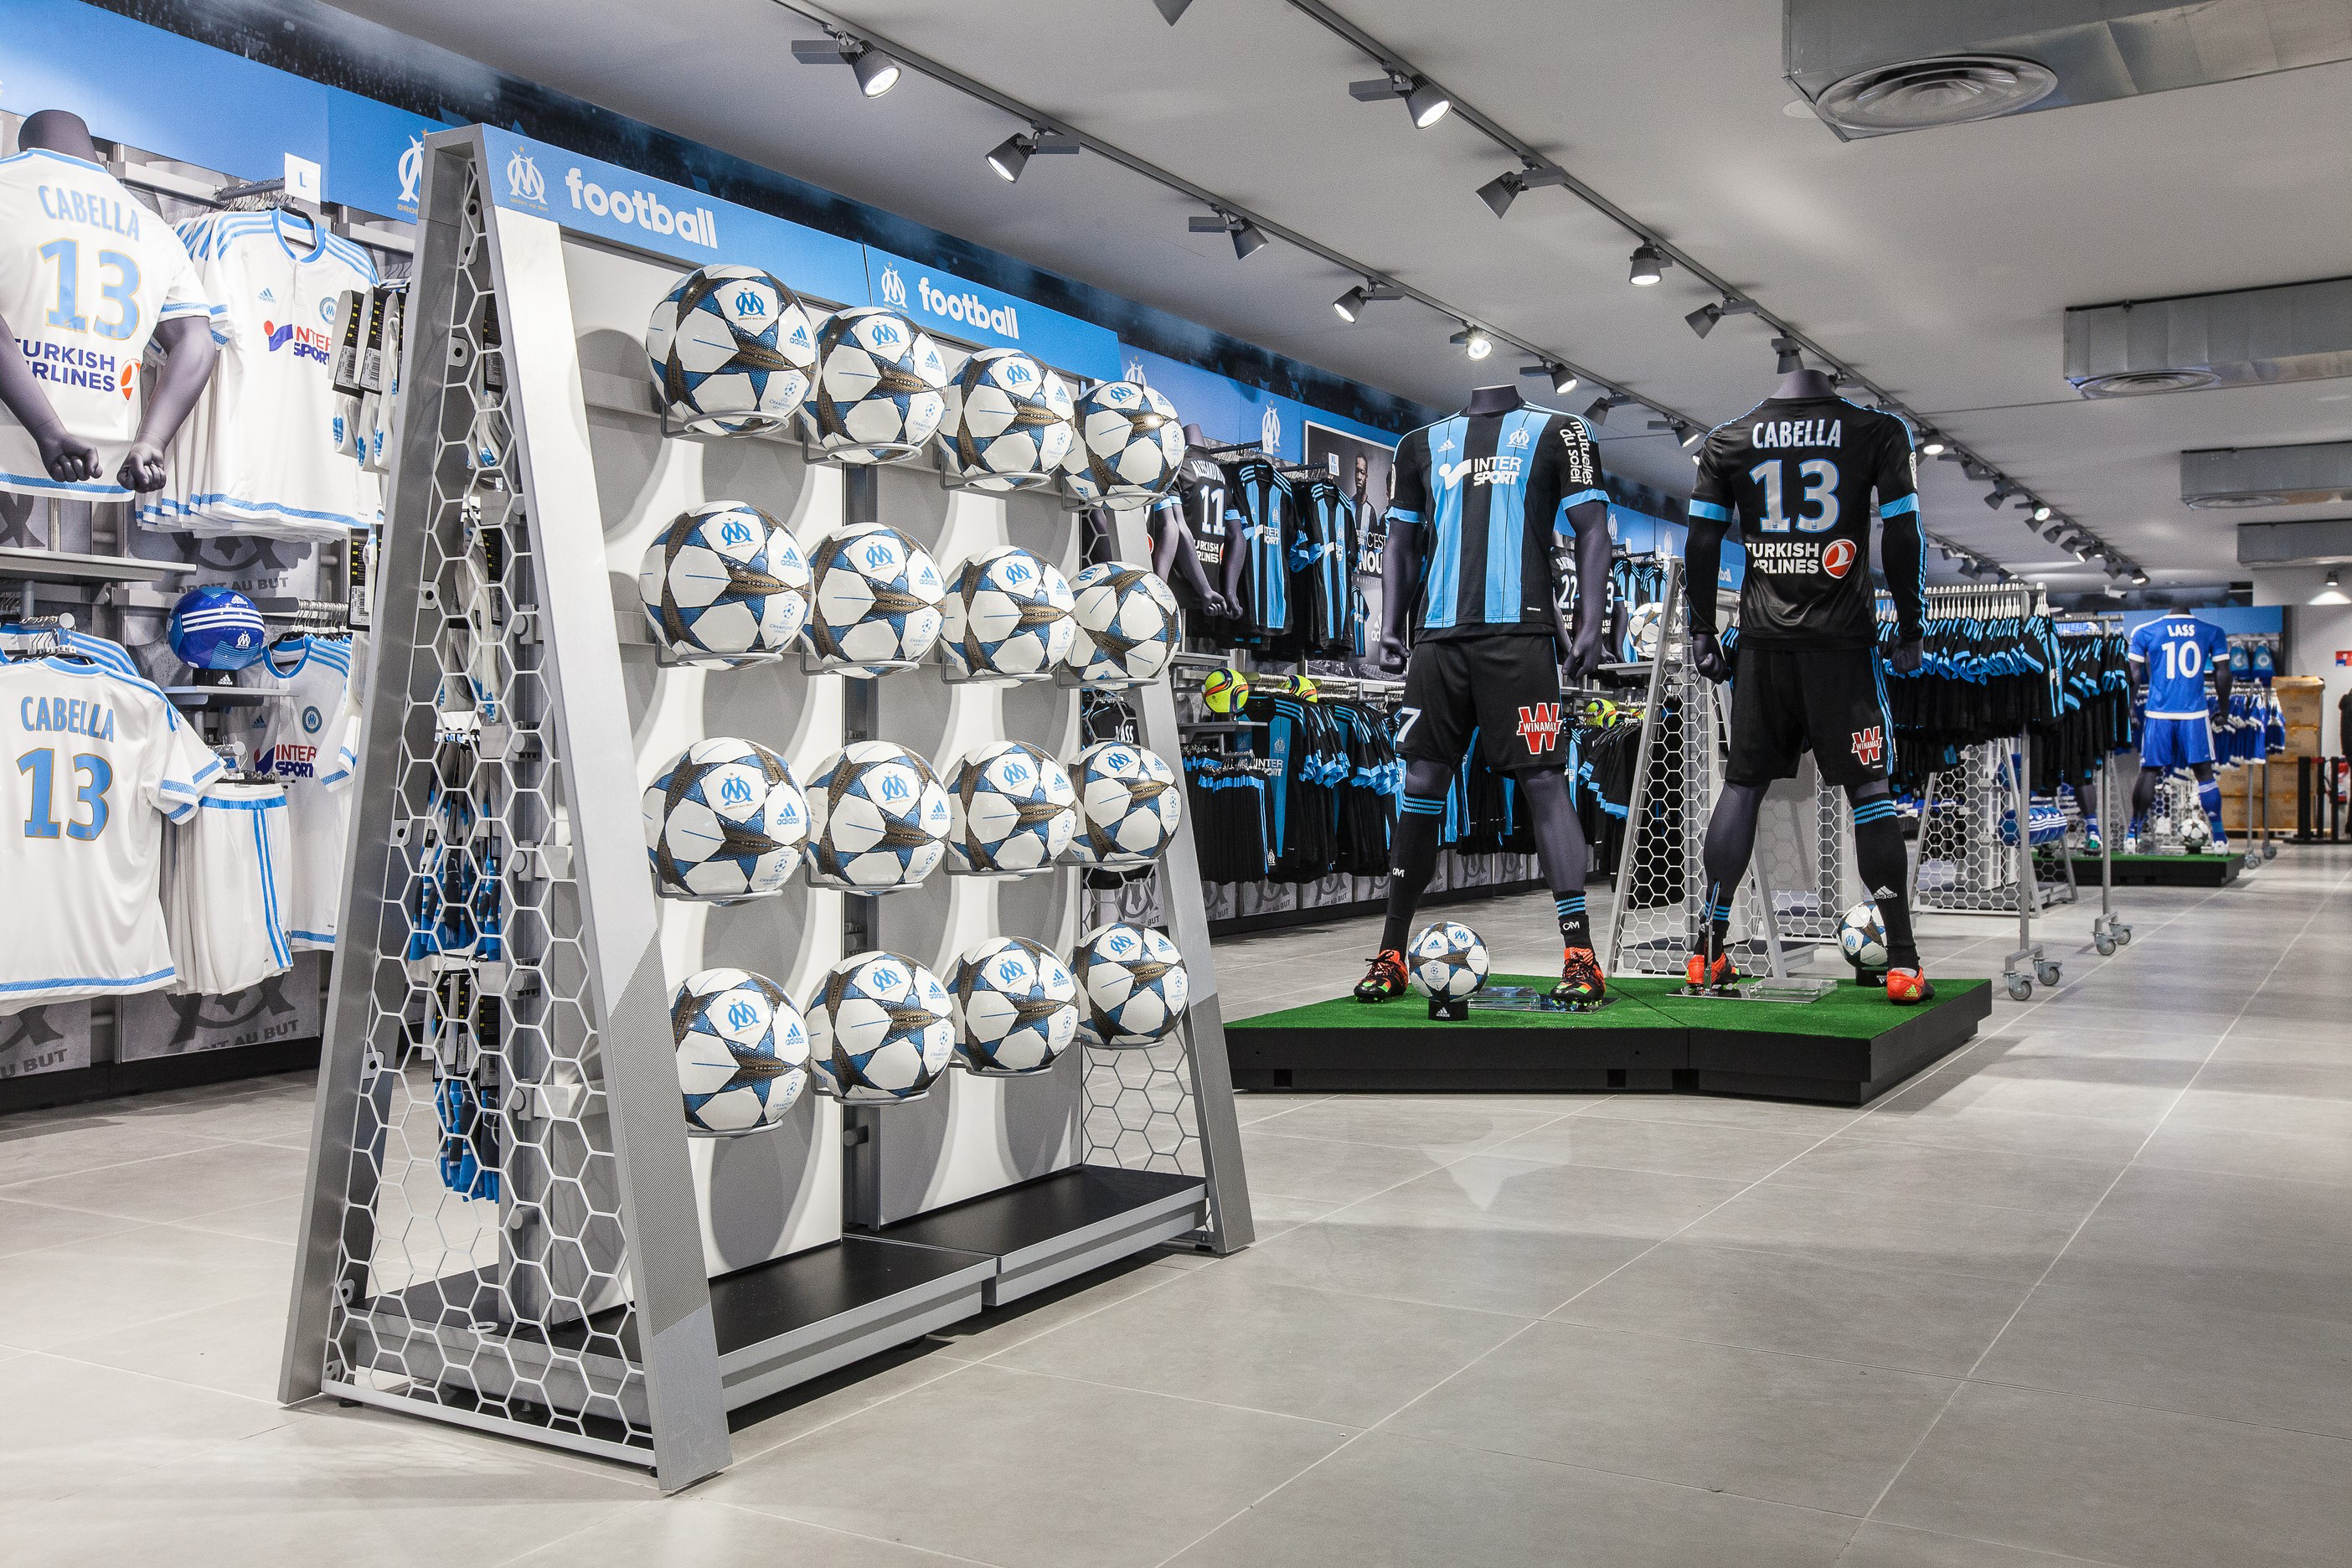 comment la nouvelle boutique officielle de l 39 om doit tirer les revenus du club et d 39 adidas vers. Black Bedroom Furniture Sets. Home Design Ideas